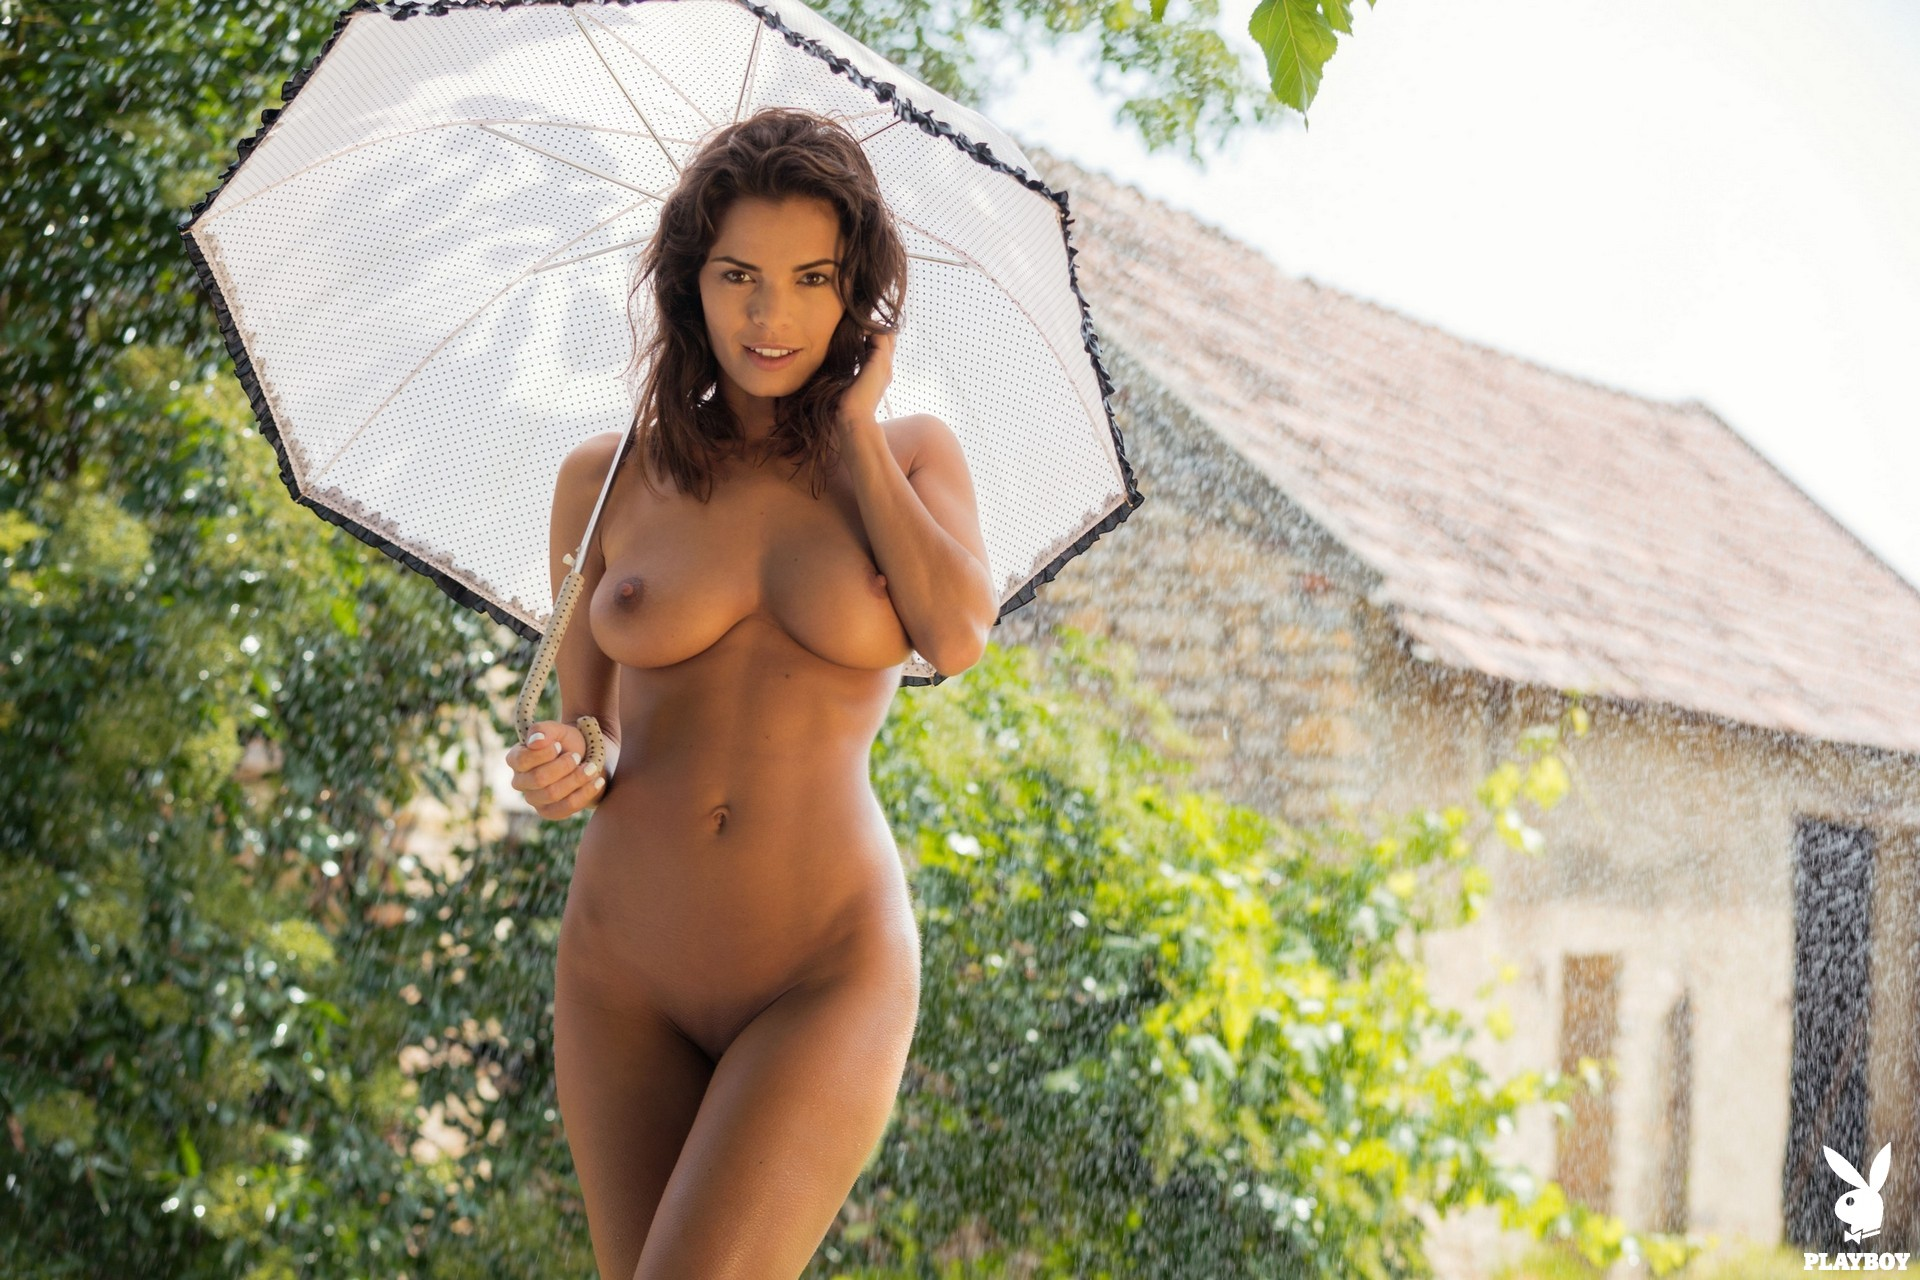 Natalie Costello in Sublime Shower - Playboy Plus 26